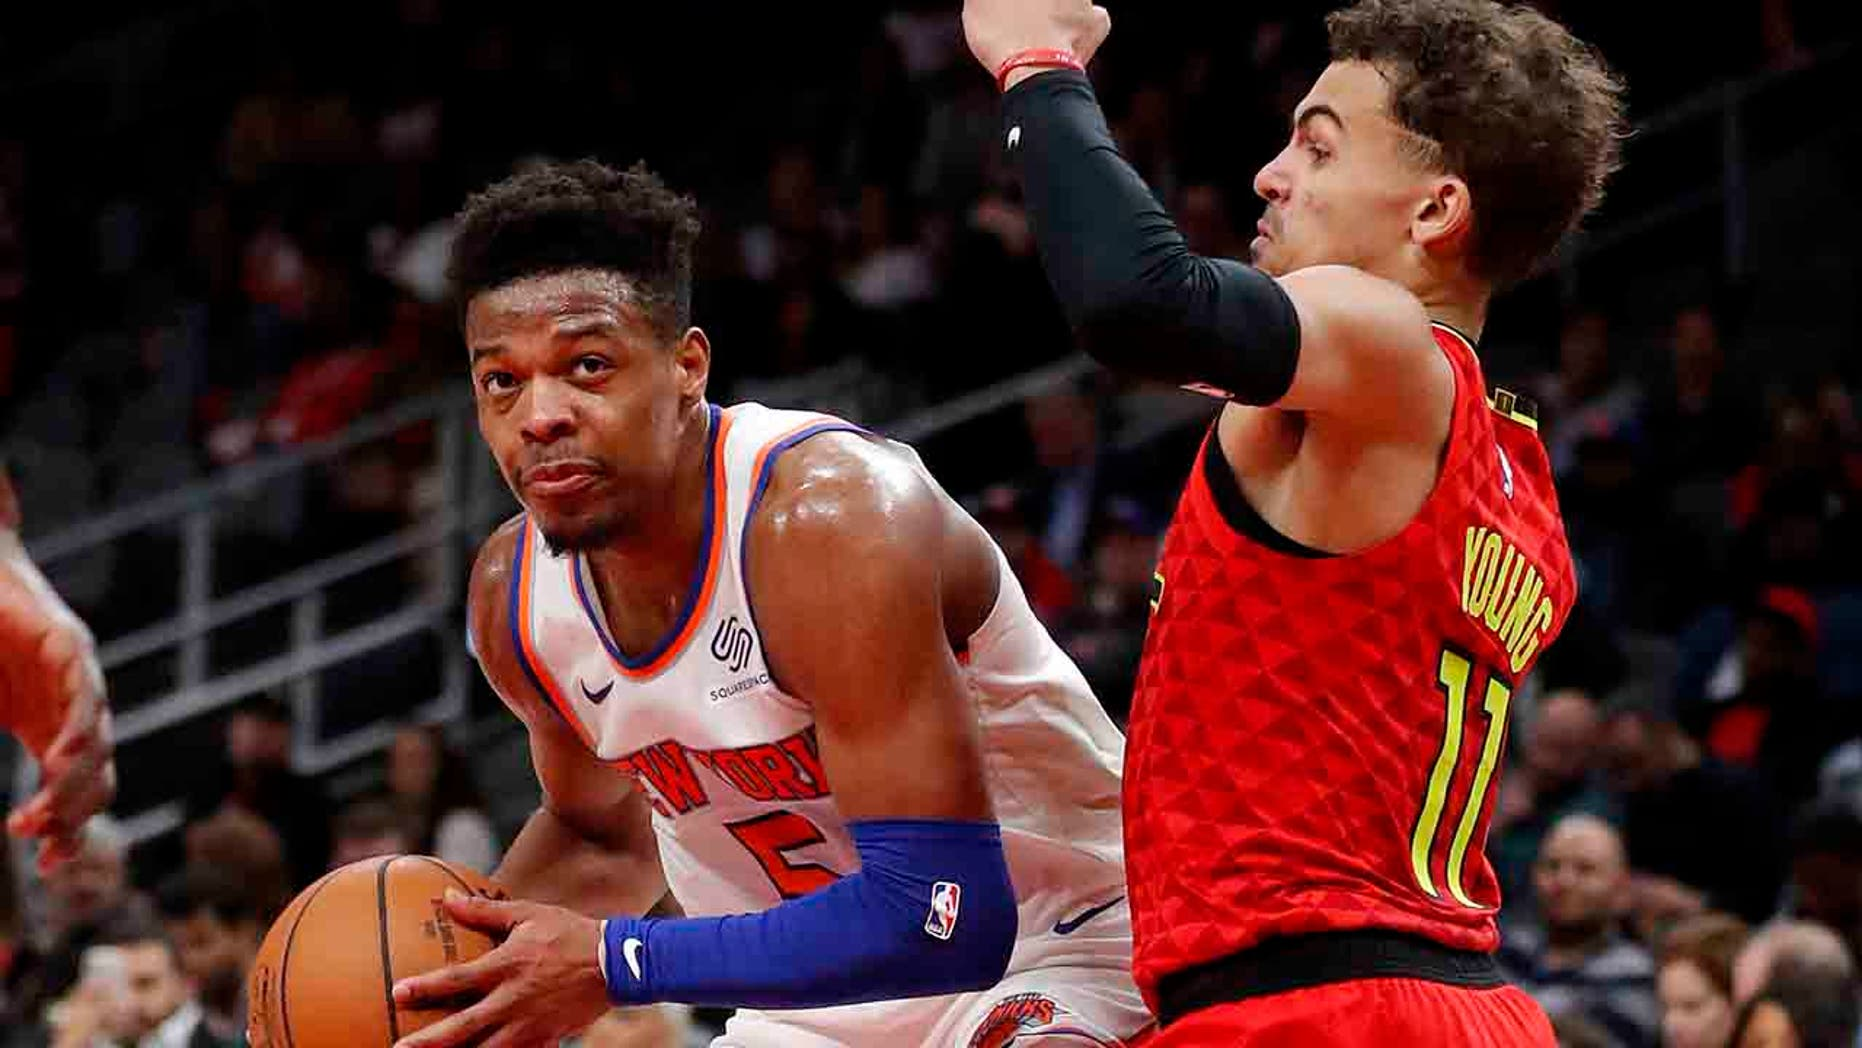 Nbas Woeful Ny Knicks Finally Win After Team Record Losing Streak